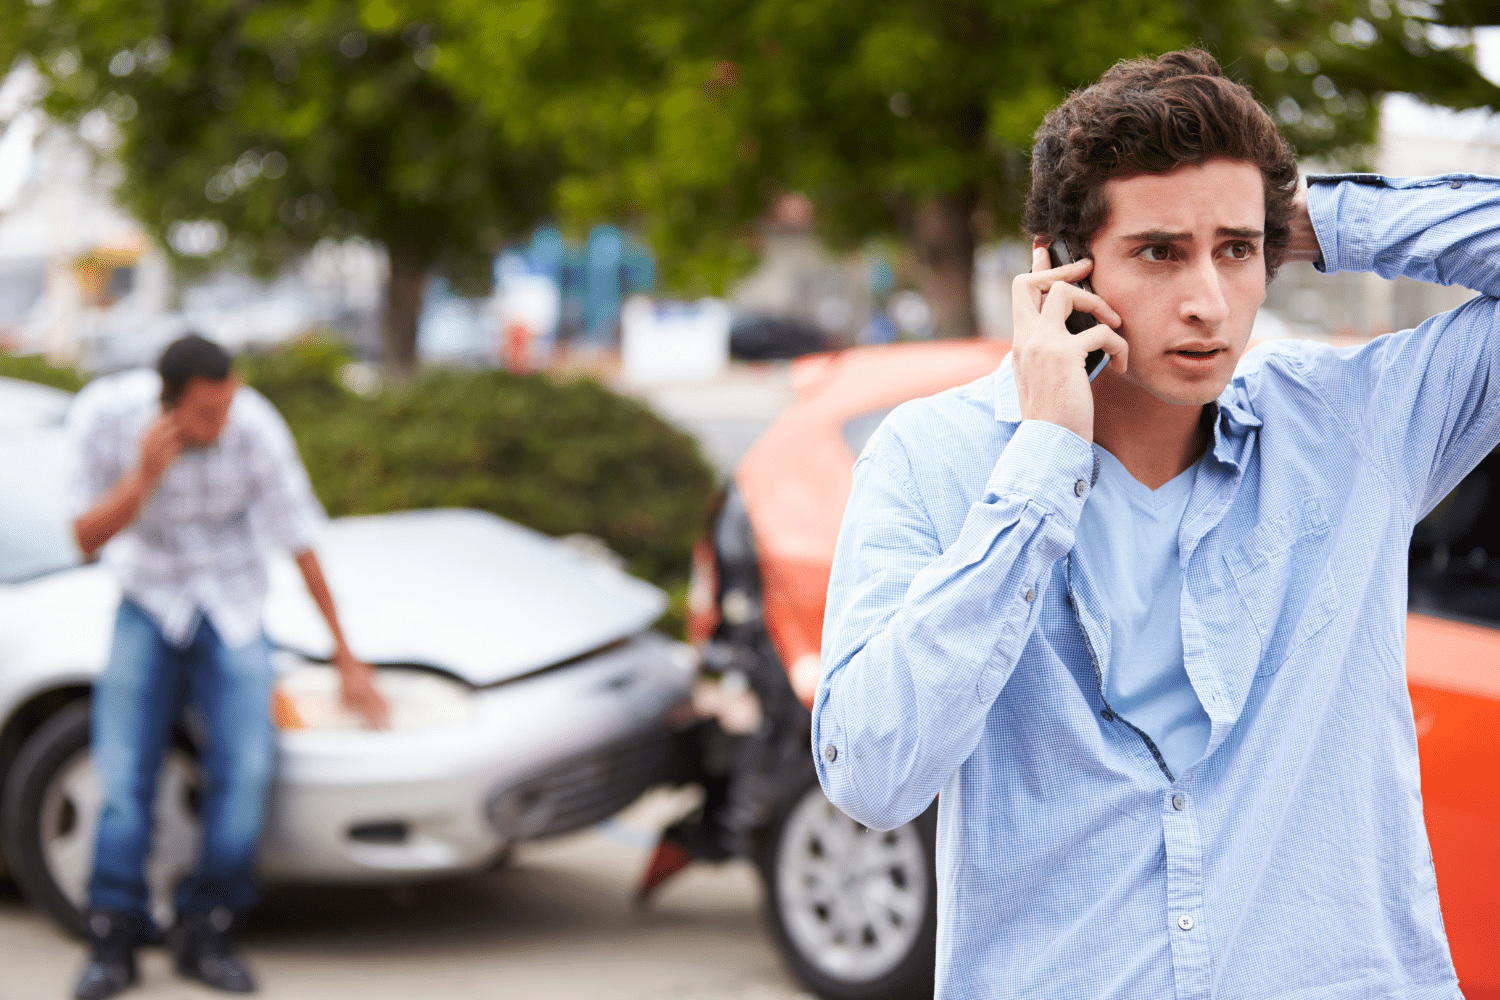 What Should I Do if I Get into a Car Accident? - Accident